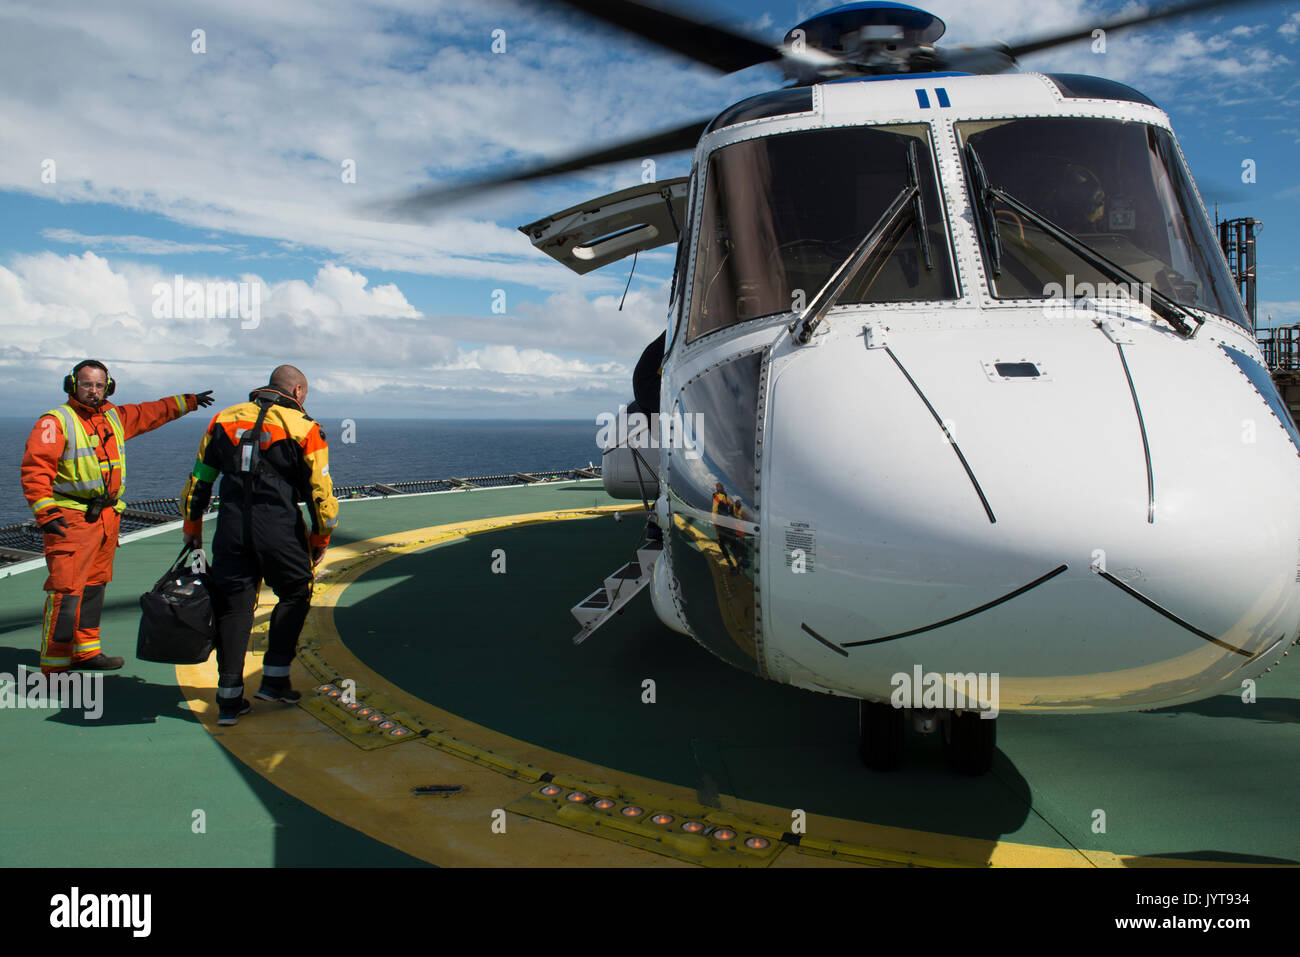 Bristow Helicopter, landing on a north sea oil and gas platform. while passengers disembark. credit: LEE RAMSDEN / ALAMY - Stock Image